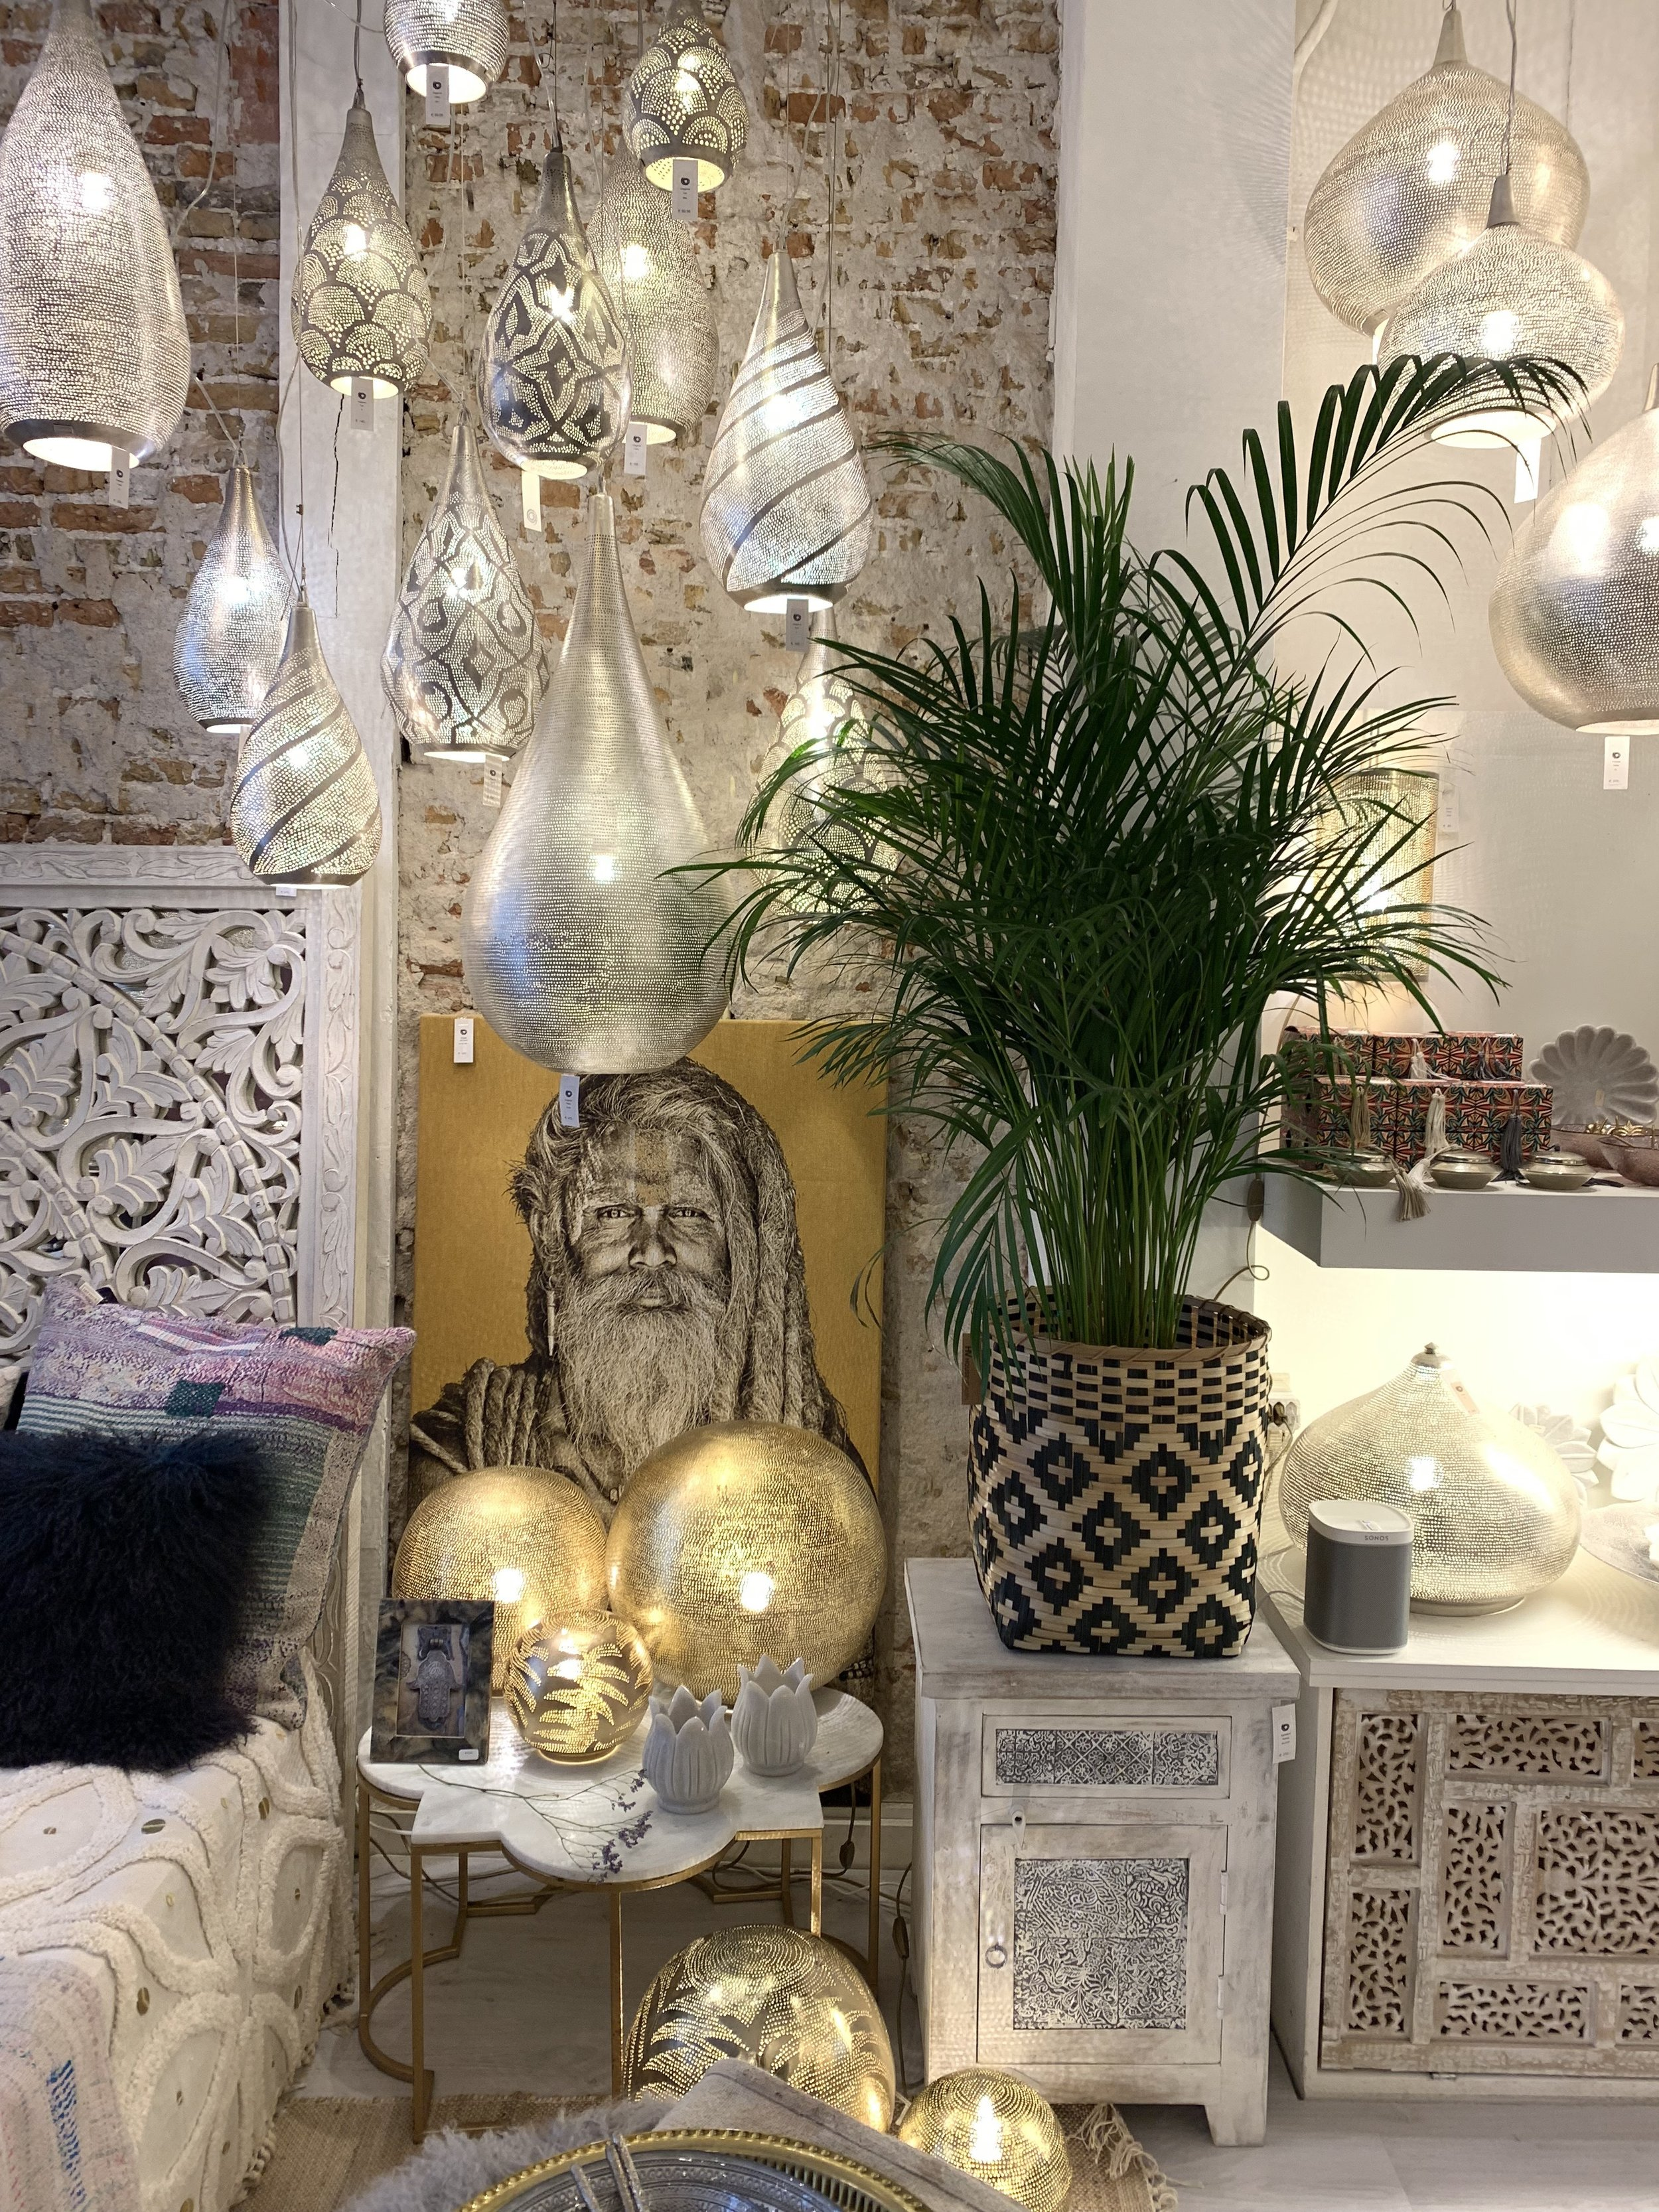 Homeware Store Amsterdam - Vanilla Rose Weddings Monthly Round Up